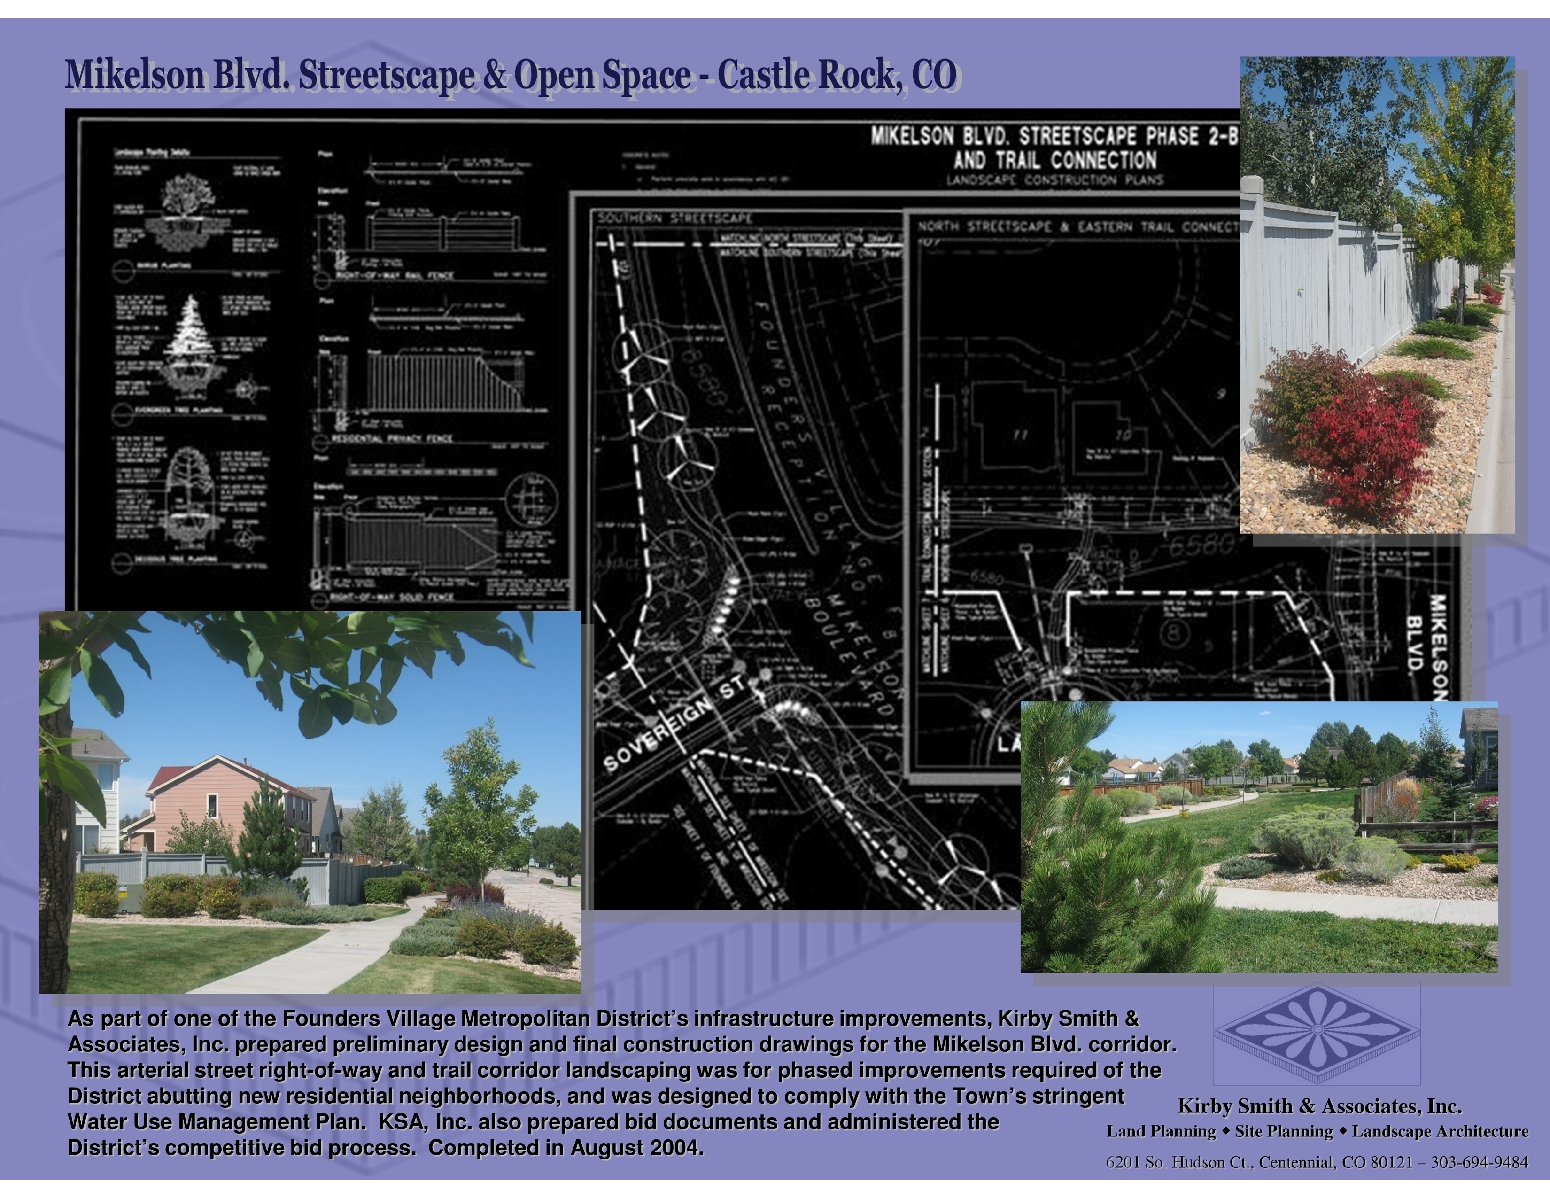 As part of one of the Founders Village Metropolitan District's infrastructure improvements, Kirby Smith & Associates, Inc. prepared preliminary design and final construction drawings for the Mikelson Blvd. corridor.  This arterial street right-of-way and trail corridor landscaping was for phased improvements required of the District abutting new residential neighborhoods, and was designed to comply with the Town's stringent       Water Use Management Plan.  KSA, Inc. also prepared bid documents and administered the                       District's competitive bid process.